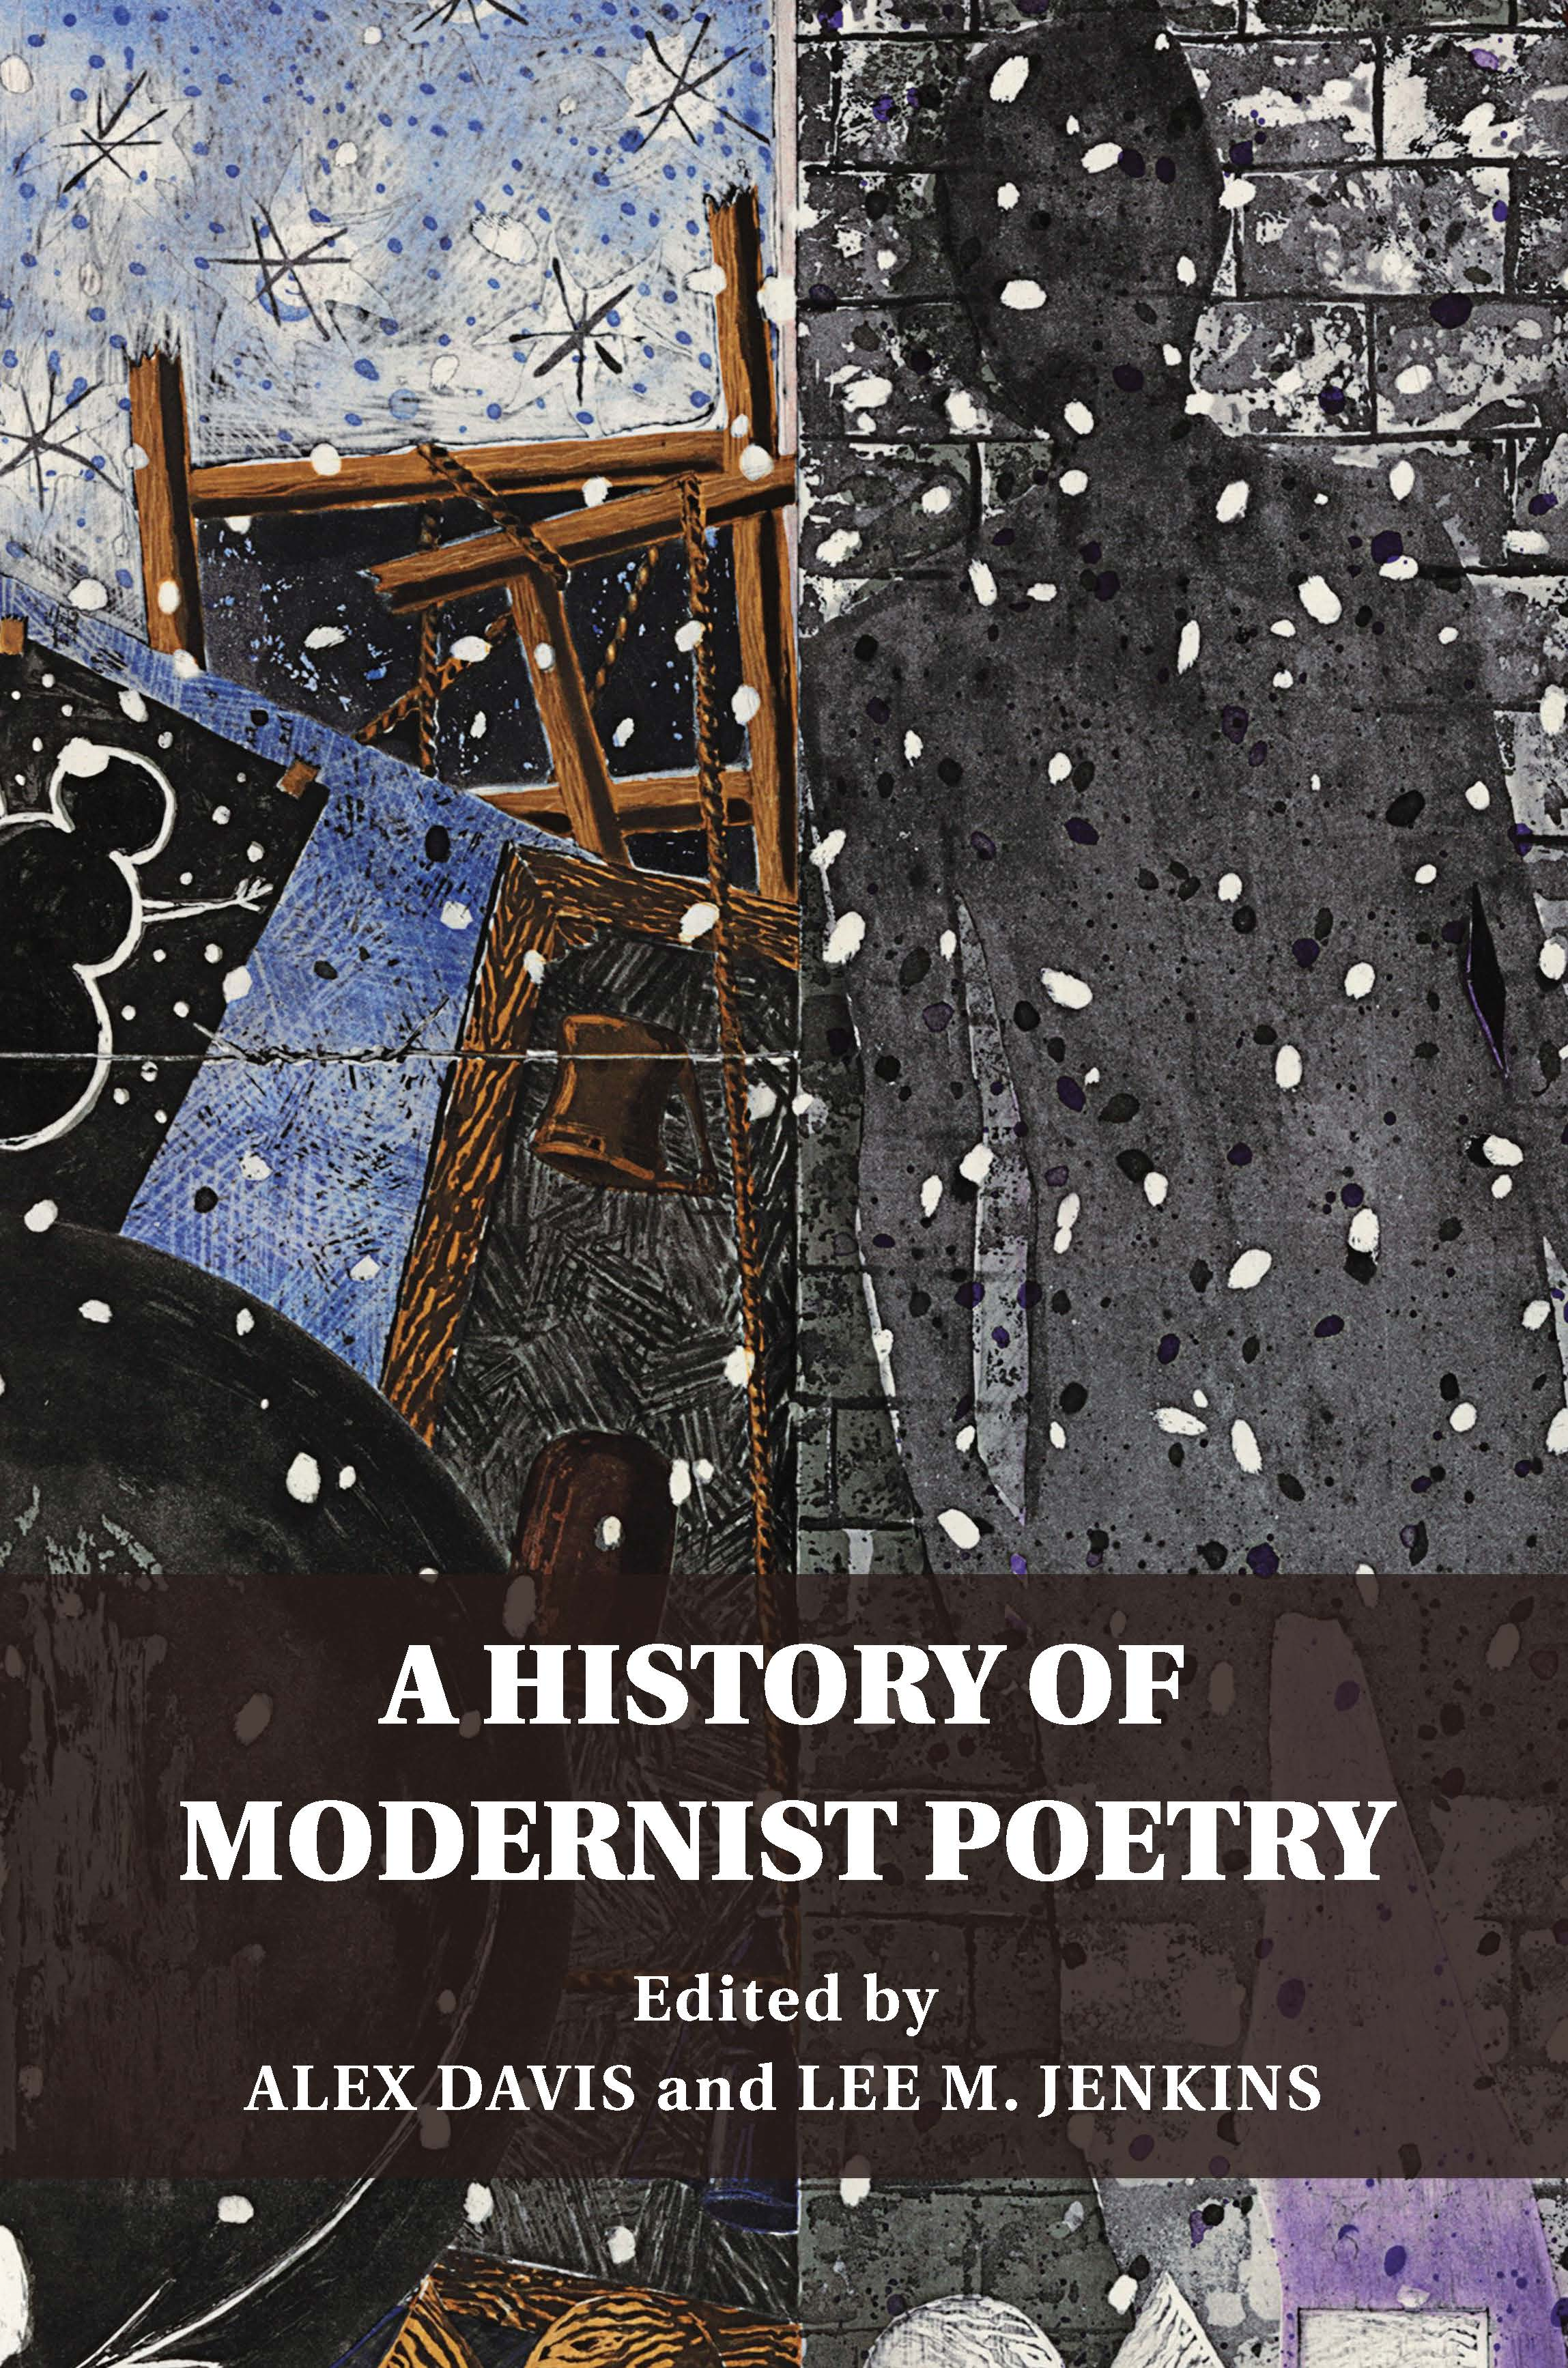 Review of 'A History of Modernist Poetry' Ed. Alex Davis & Lee M. Jenkins